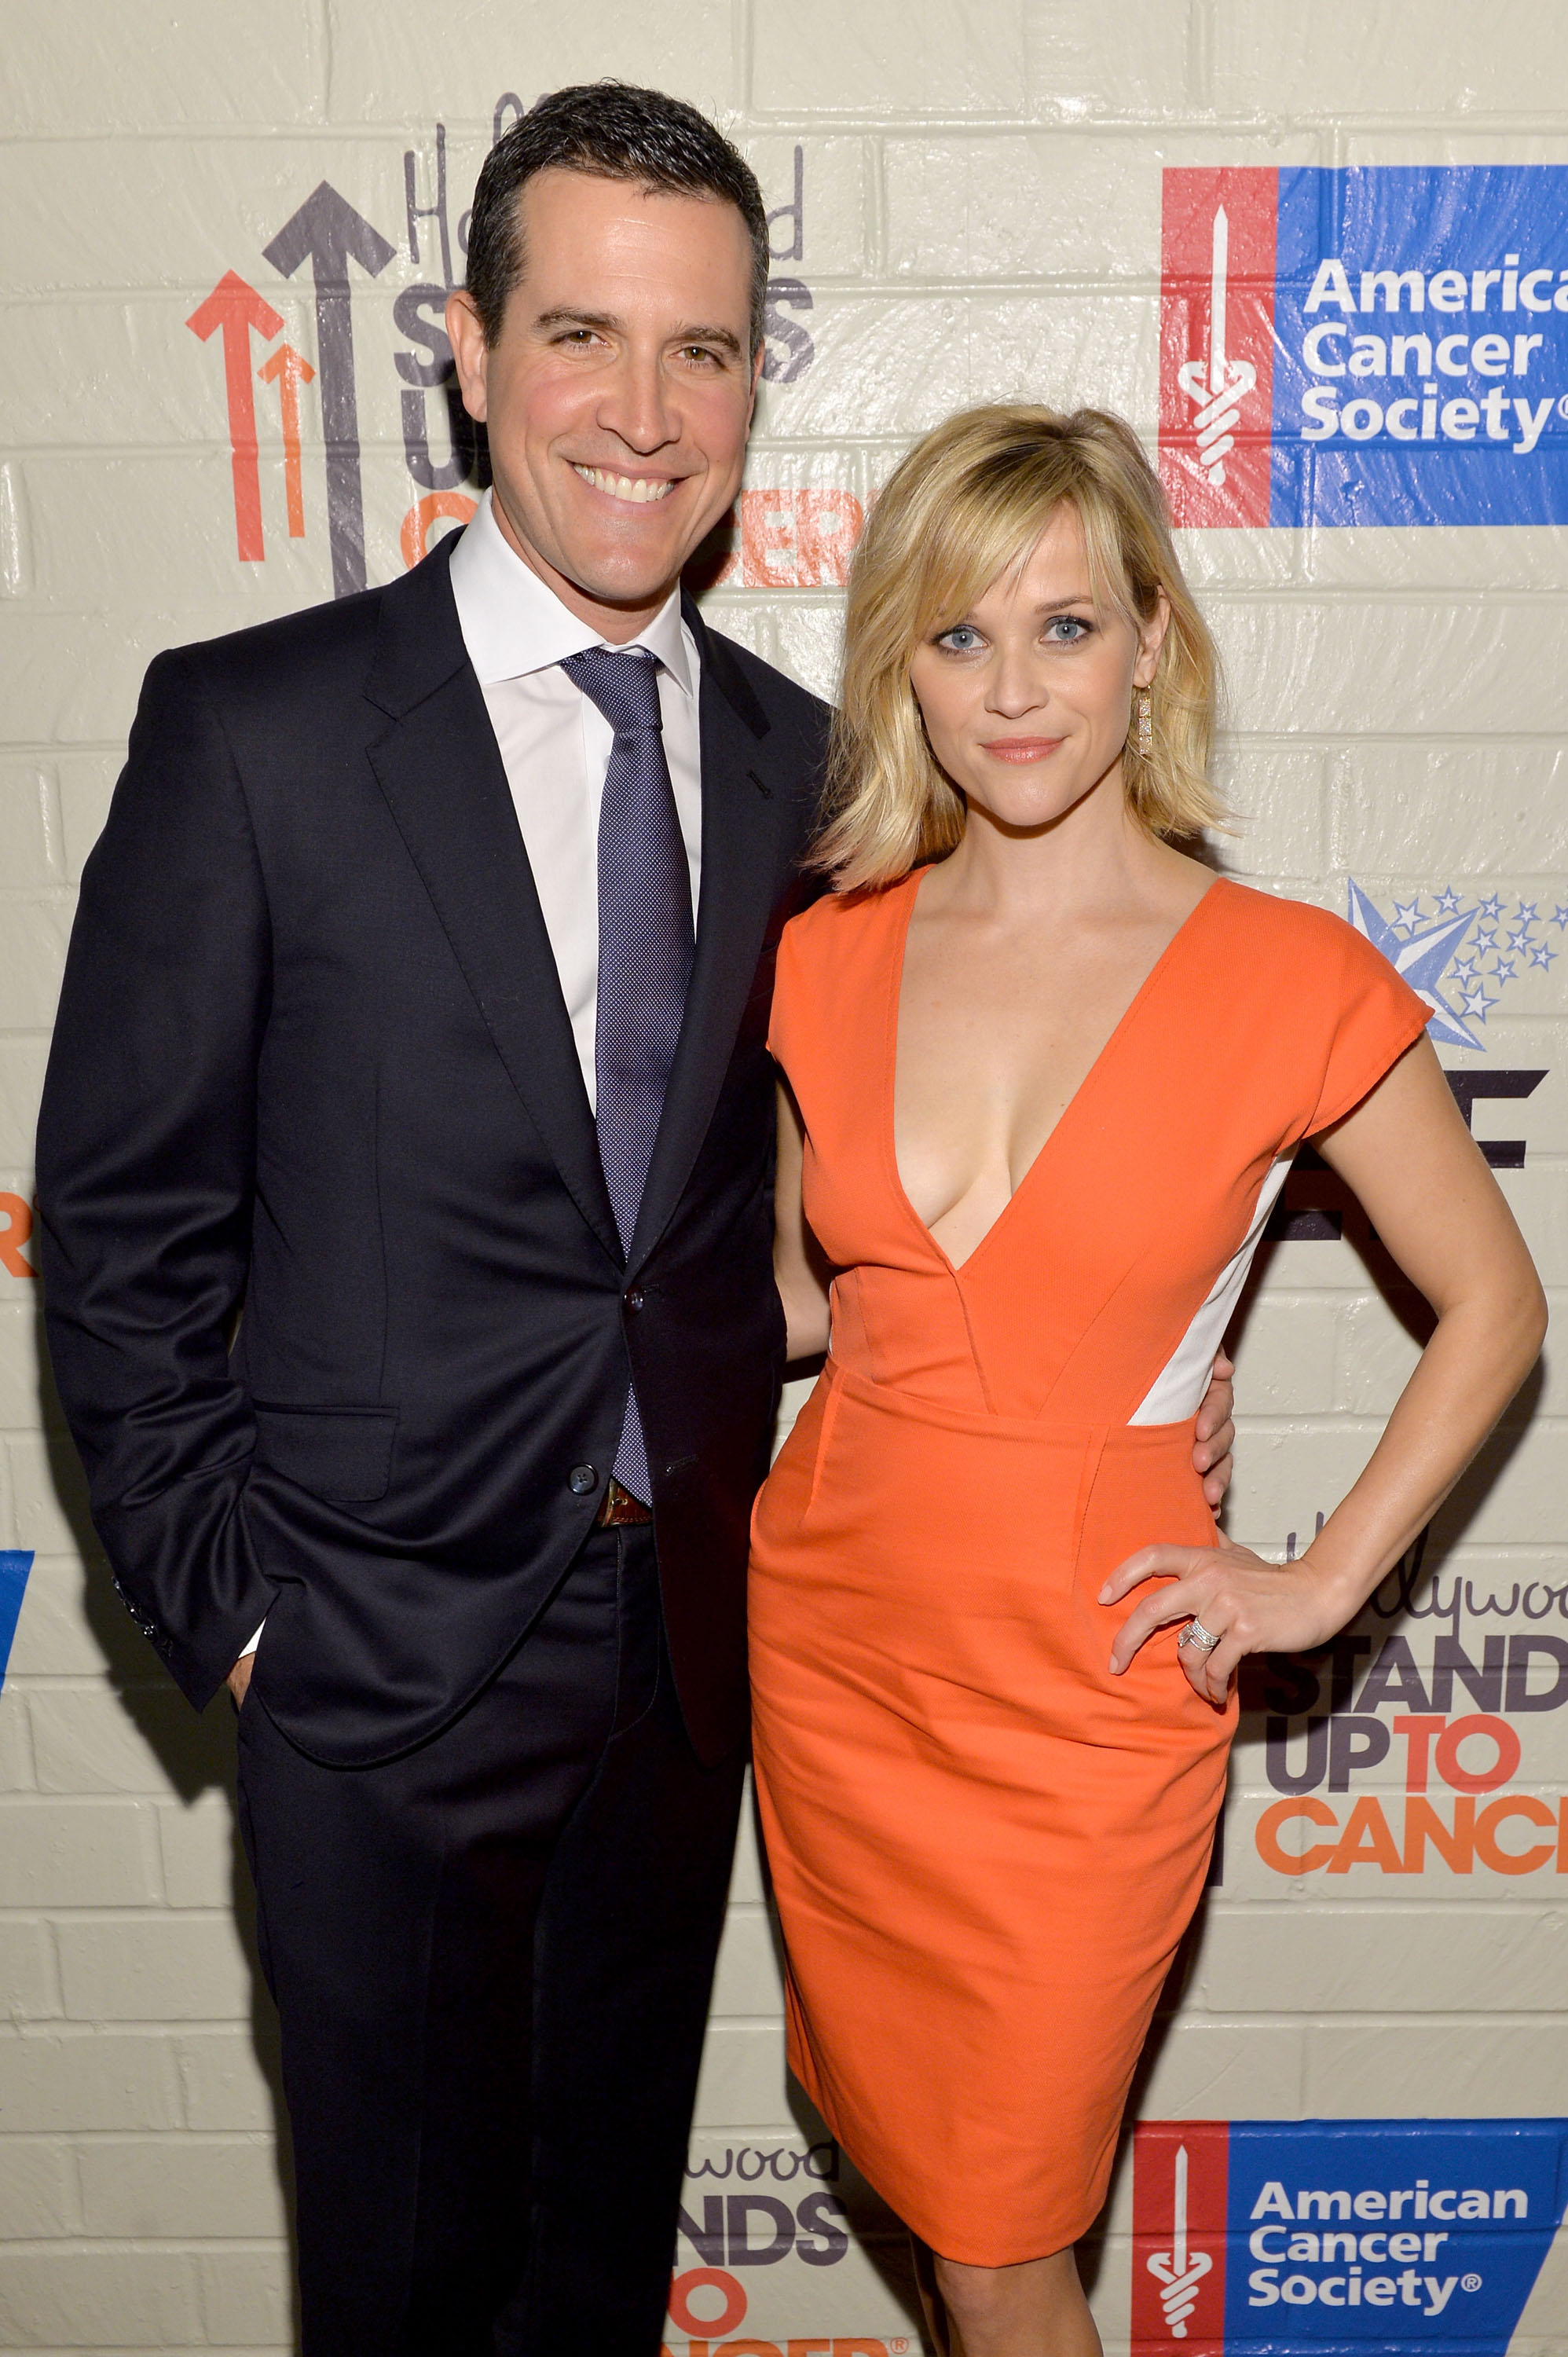 Jim Toth Wiki: Everything To Know About Reese Witherspoon's Husband